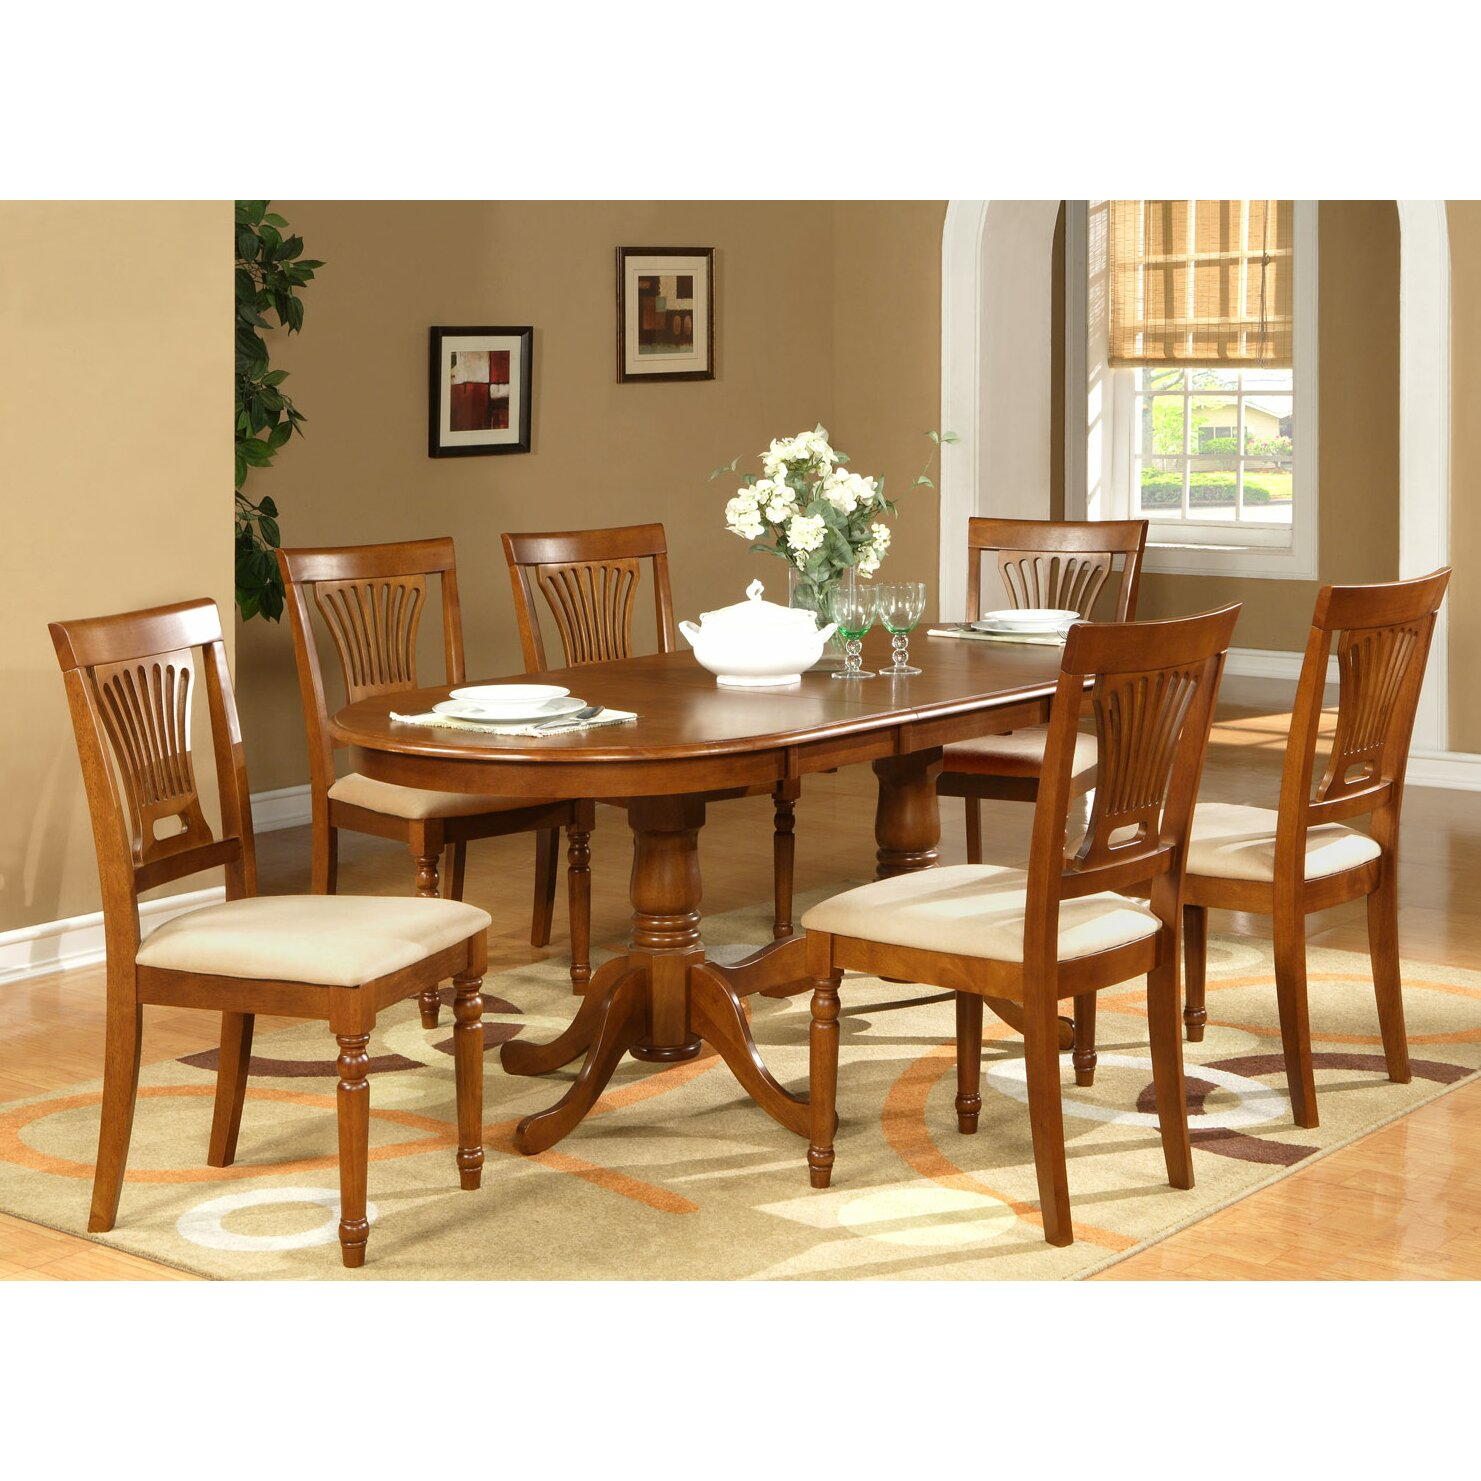 Darby Home Co Germantown 7 Piece Dining Set amp Reviews